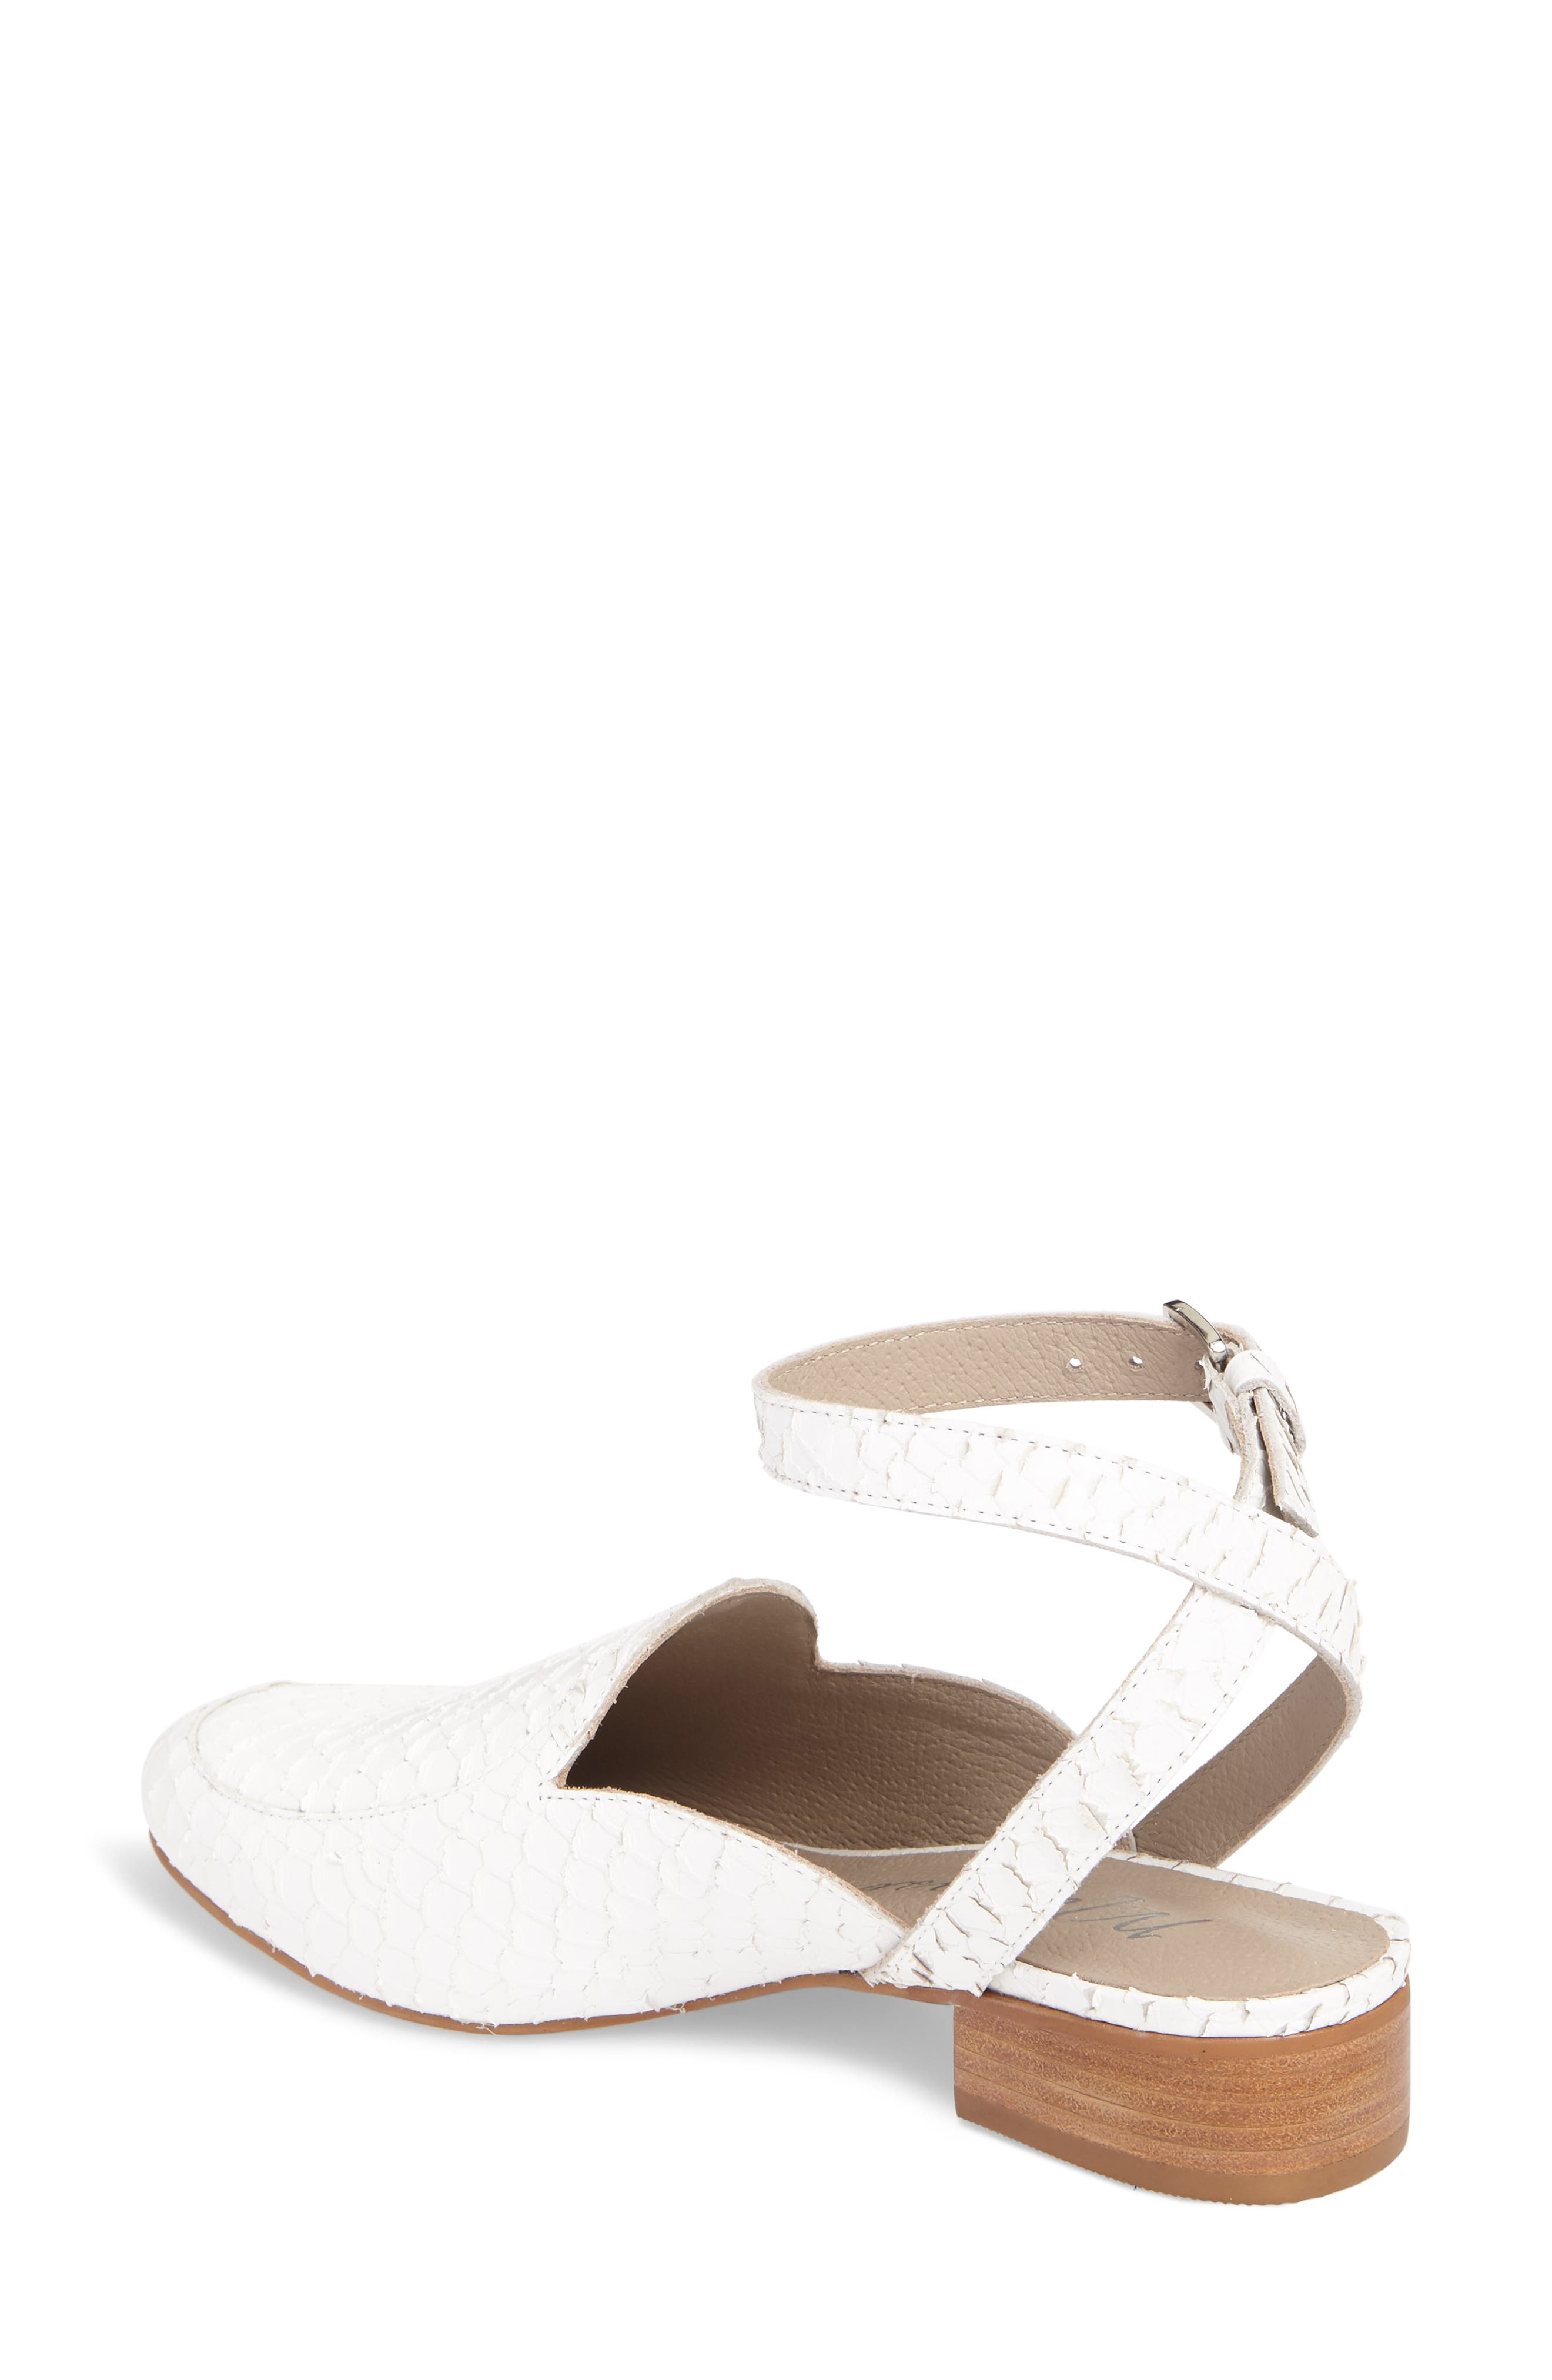 Half Moon Ankle Strap Loafer,                             Alternate thumbnail 2, color,                             White Leather